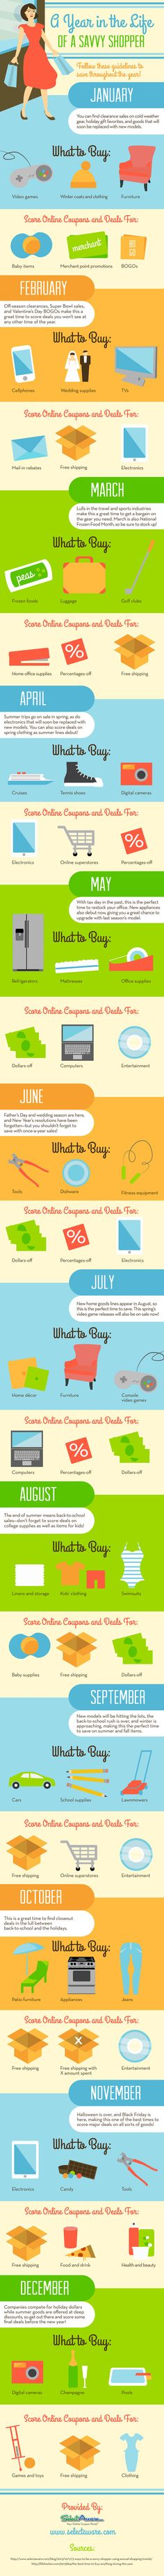 A Year in the Life of a Savvy Shopper - When is the best time to buy?